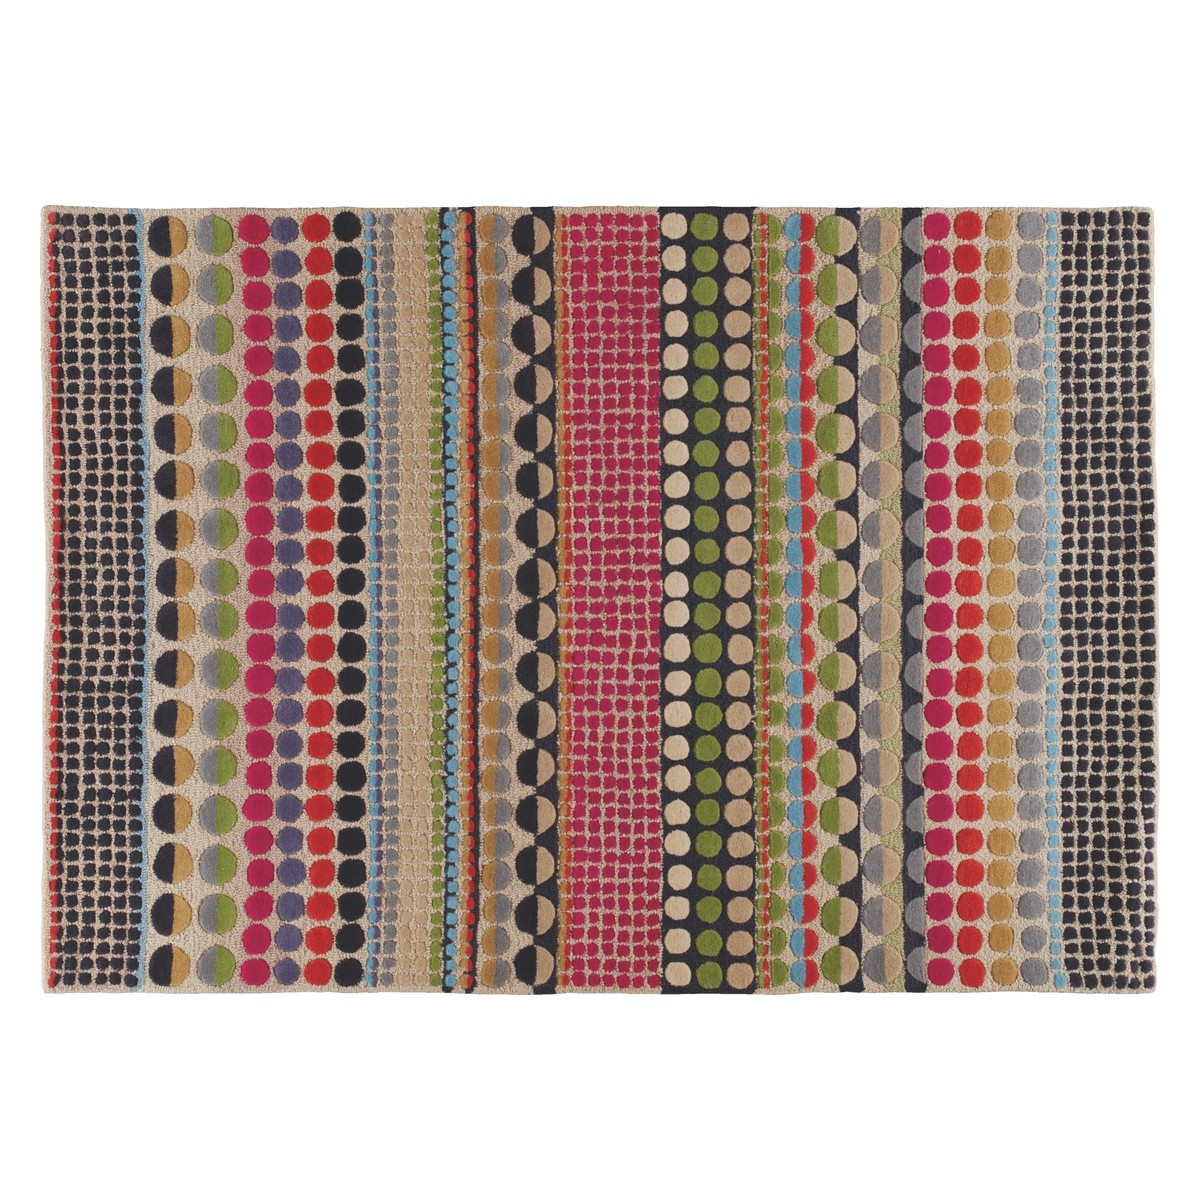 Rugs Runners Modern Large Small Rugs For Sale Habitat Regarding Large Geometric Rugs (View 14 of 15)